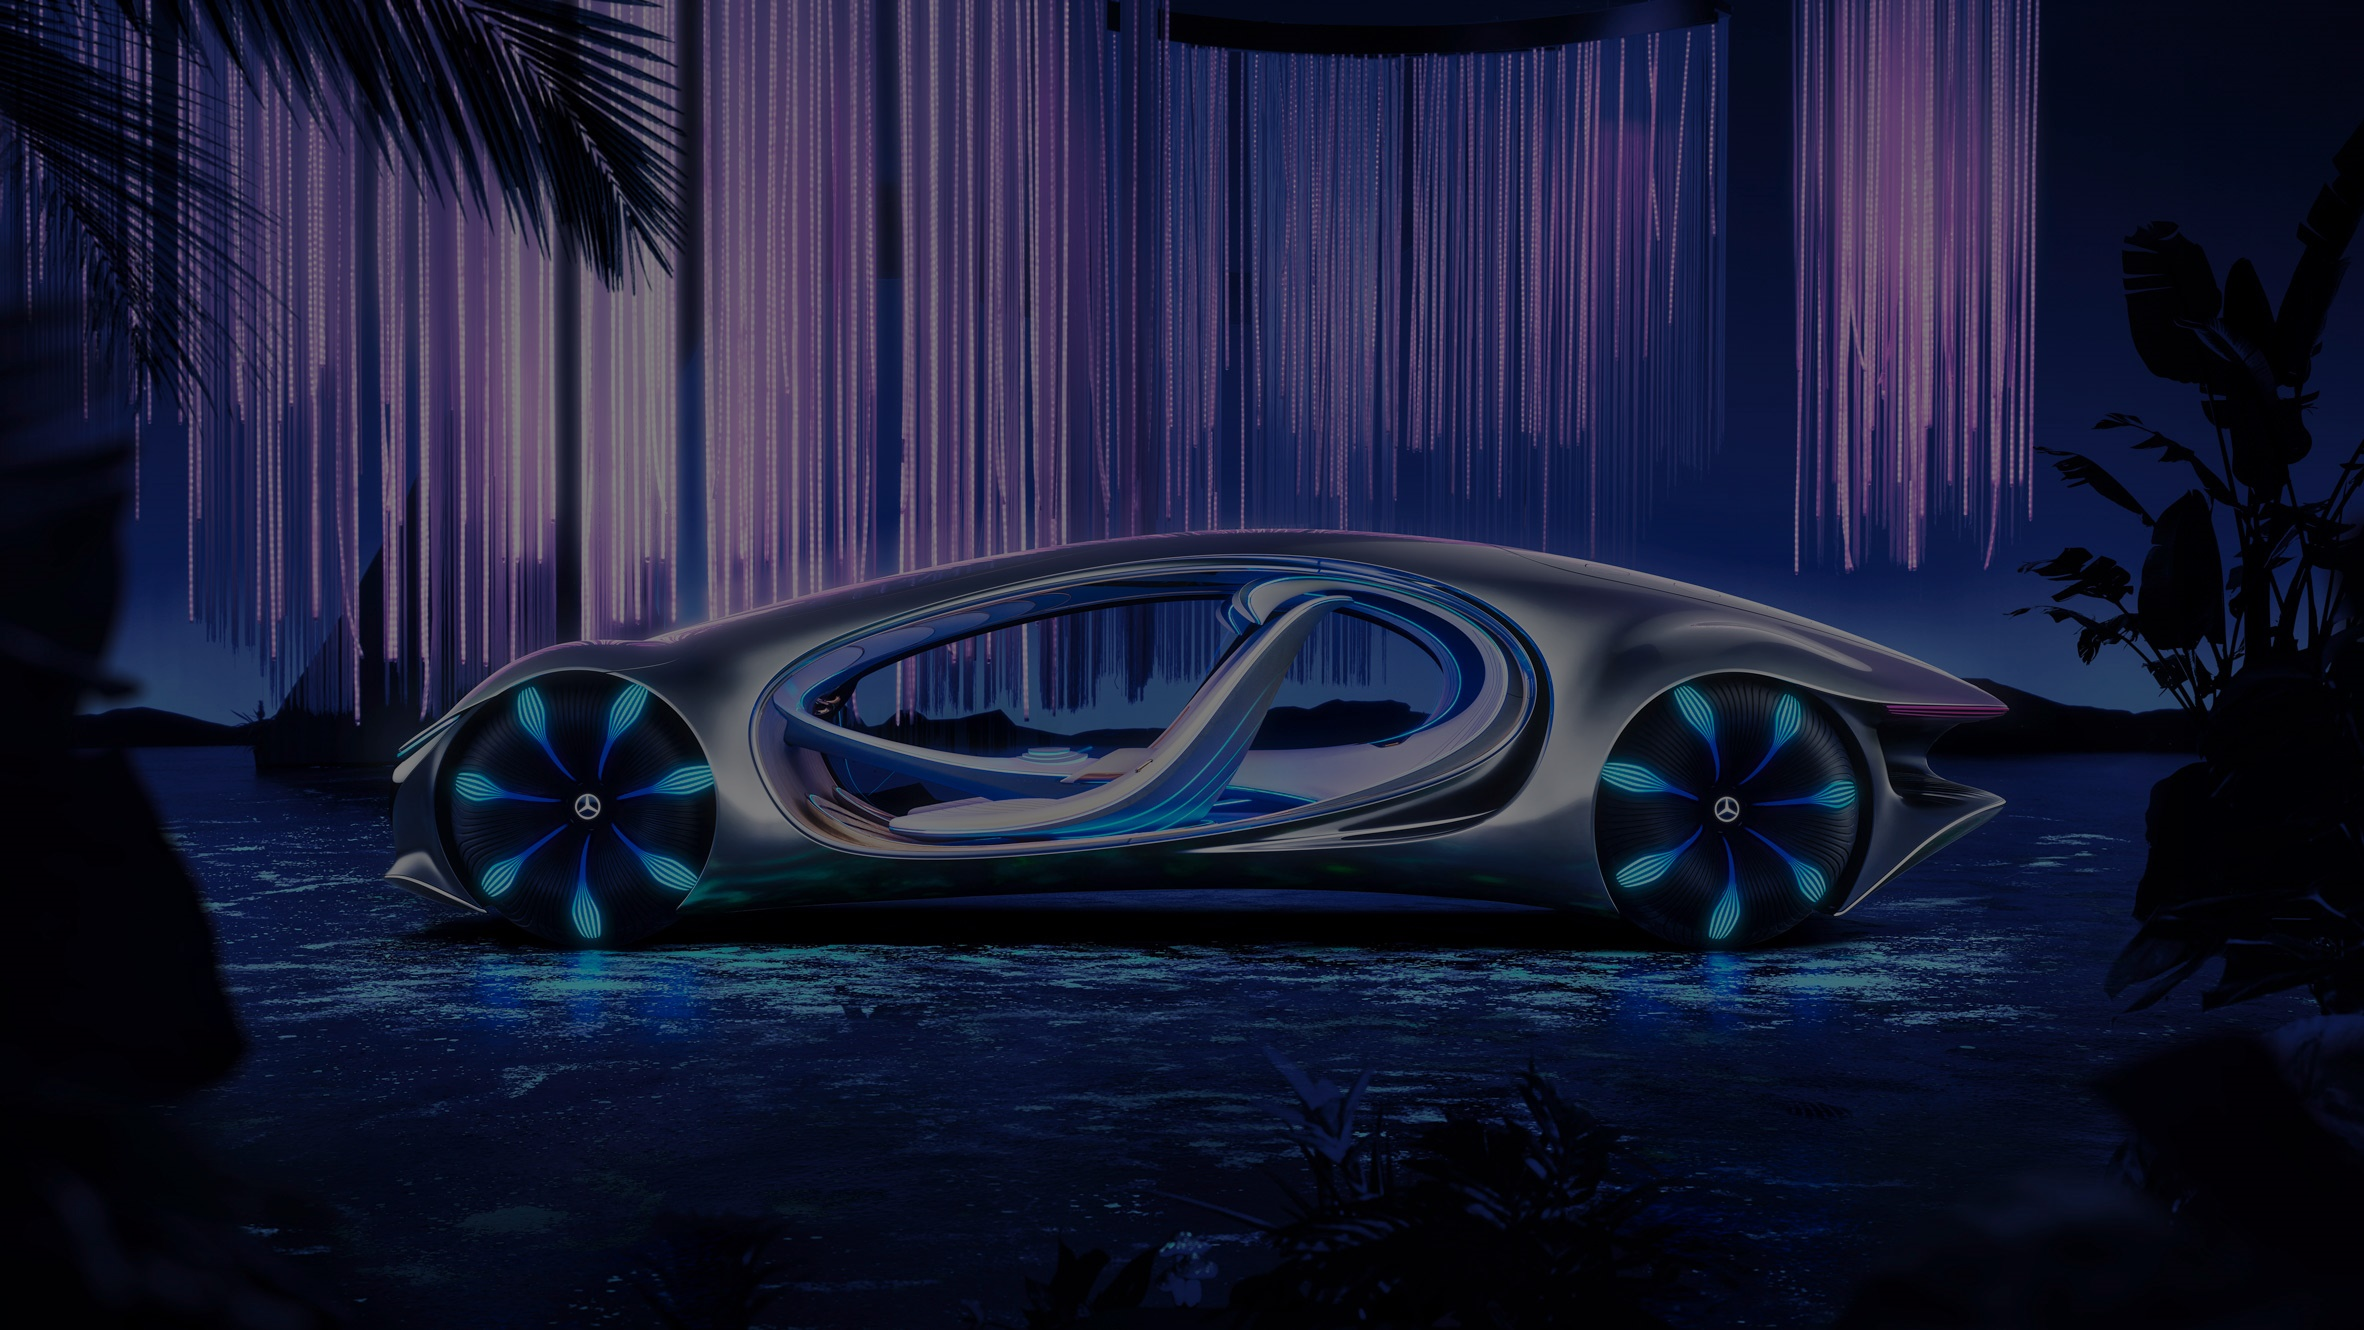 mercedes-benz-vision-avtr-car-design_dezeen_2364_hero-1-1